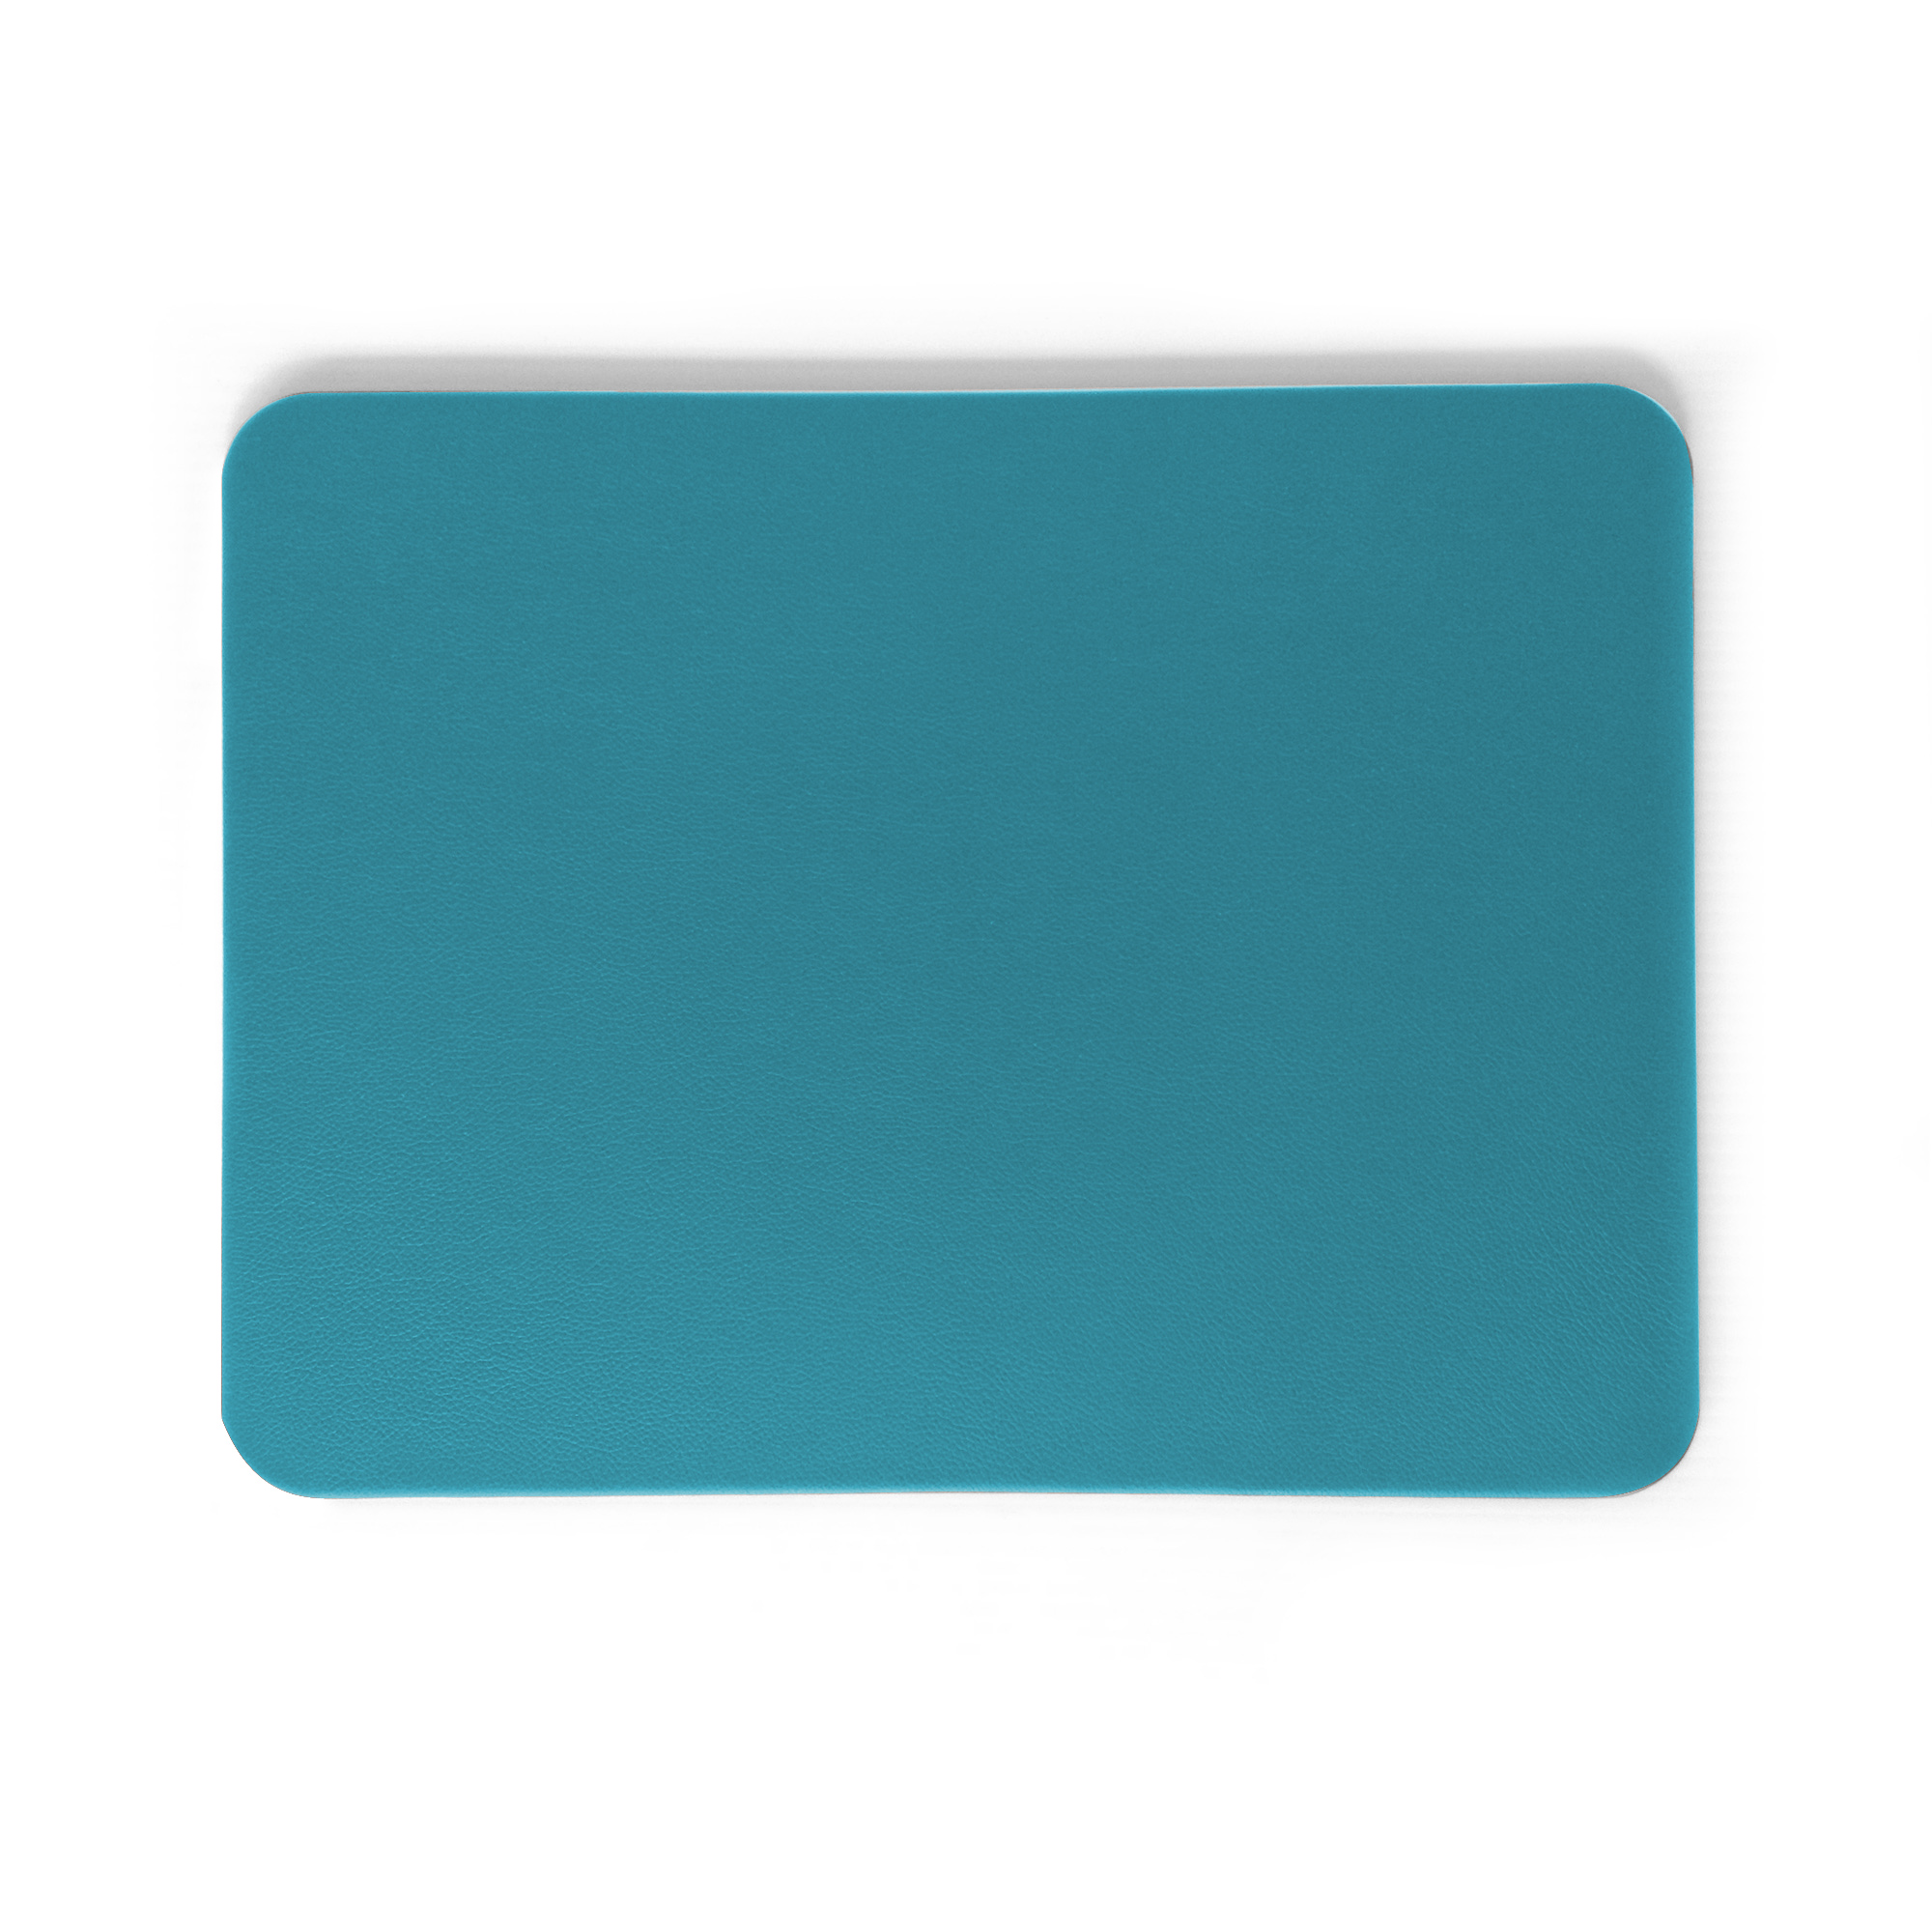 Classic Turquoise Leather Desk Pad